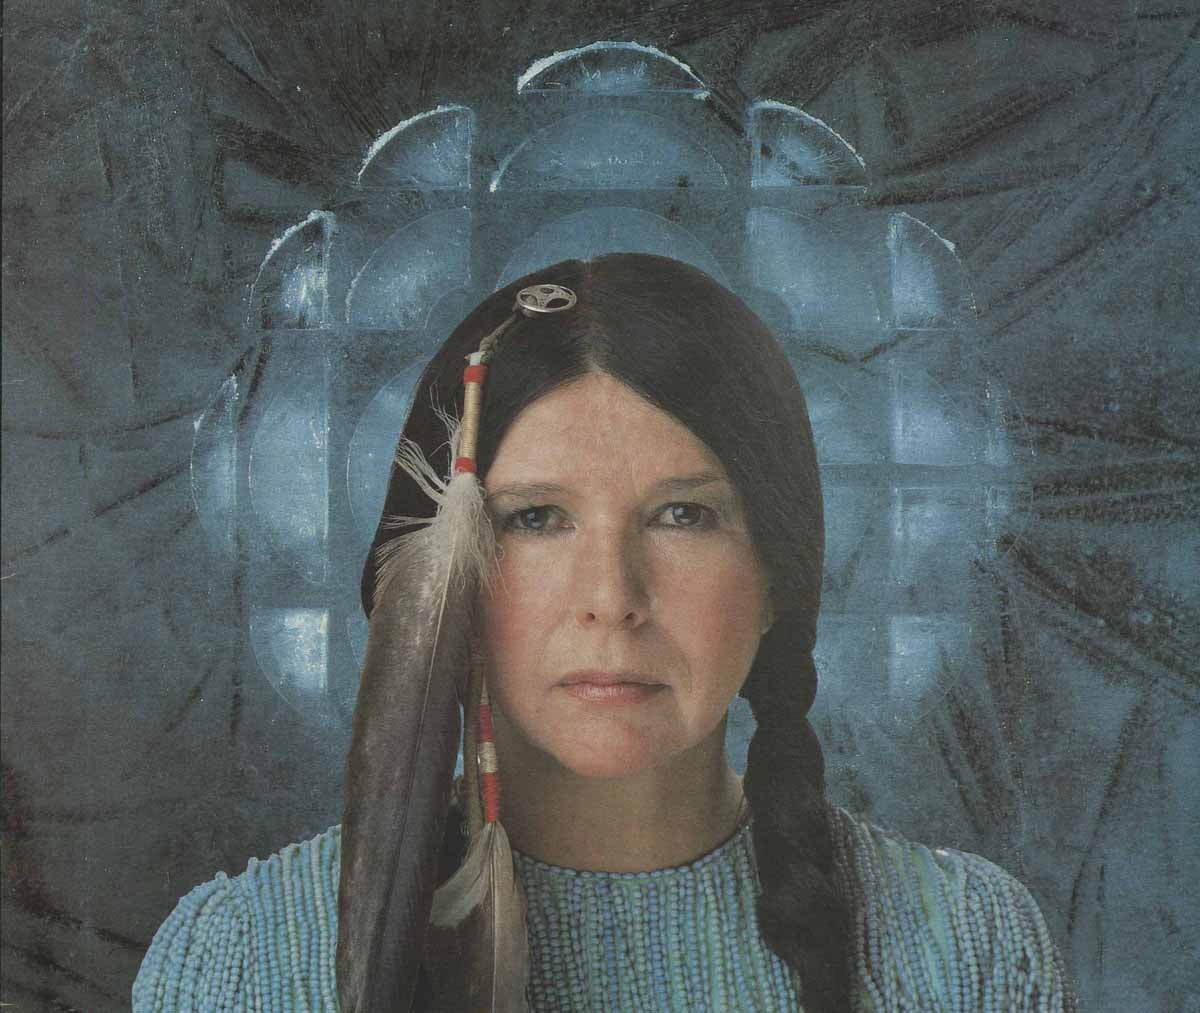 Listen to Alanis Obomsawin's 'Bush Lady' via The Museum of Canadian Music